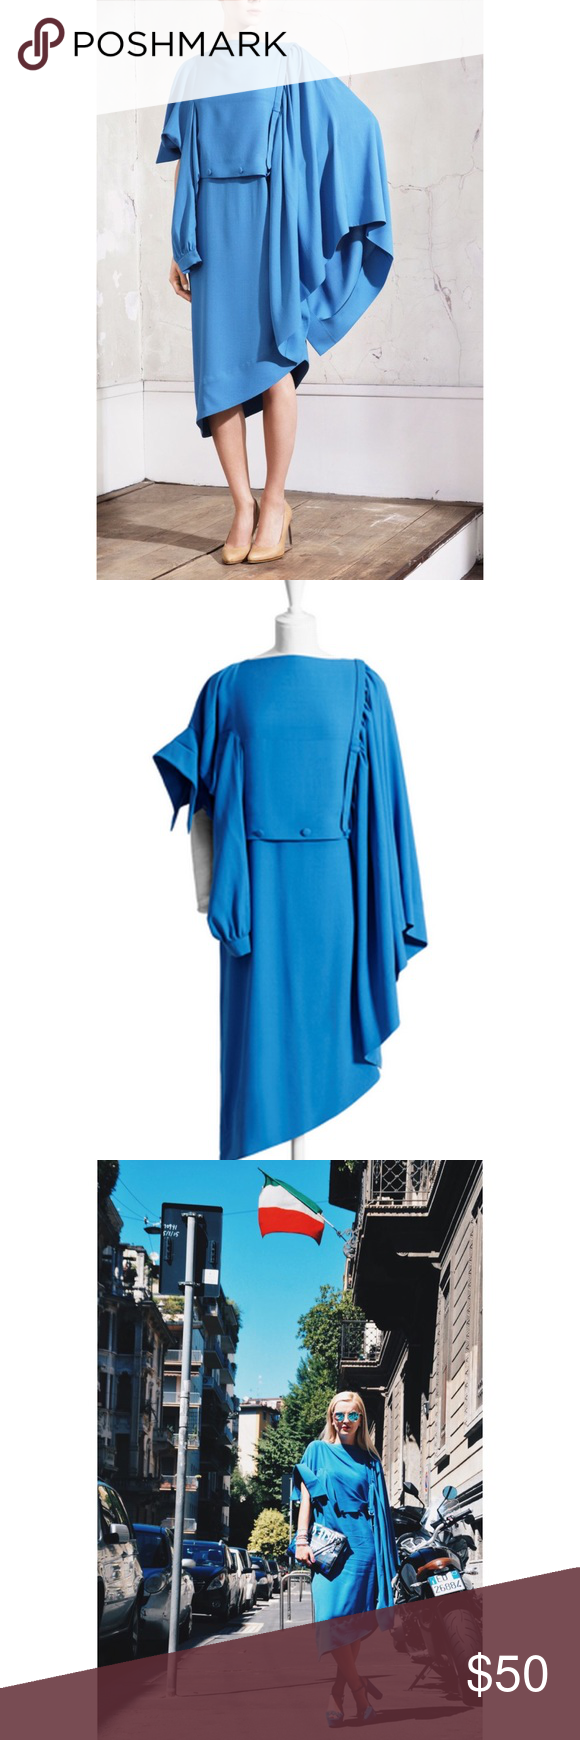 🆕Maison Margiela Blue Sideways Dres Margiela for H&M Unique horizontal dress that can be worn two ways. As a regular dress with a peek a boo train in back or as an artsy sideways dress that is sure to surprise me delight any fashionista. Sadly I lost the belt but the dress works without it as wall. And there's a tiny discoloration on the dress that I have not tried to wash yet, but I believe it could be removed. Feel free to ask questions and make an offer Maison Martin Margiela for H&M…